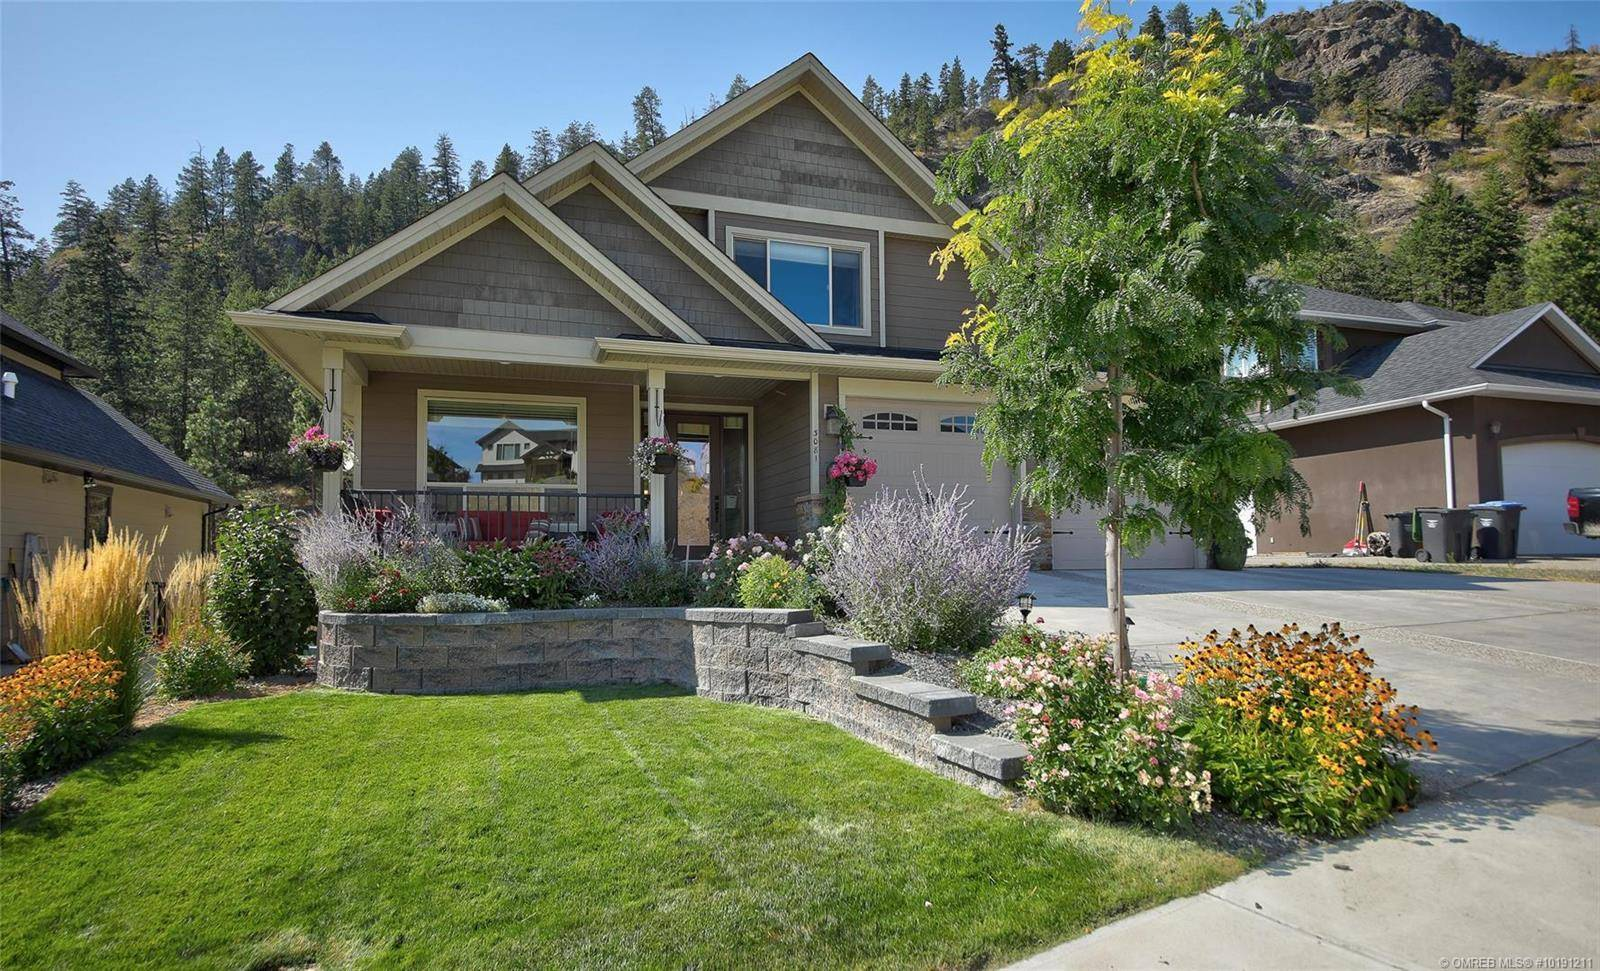 House for sale at 3081 Lakeview Cove Rd West Kelowna British Columbia - MLS: 10191211